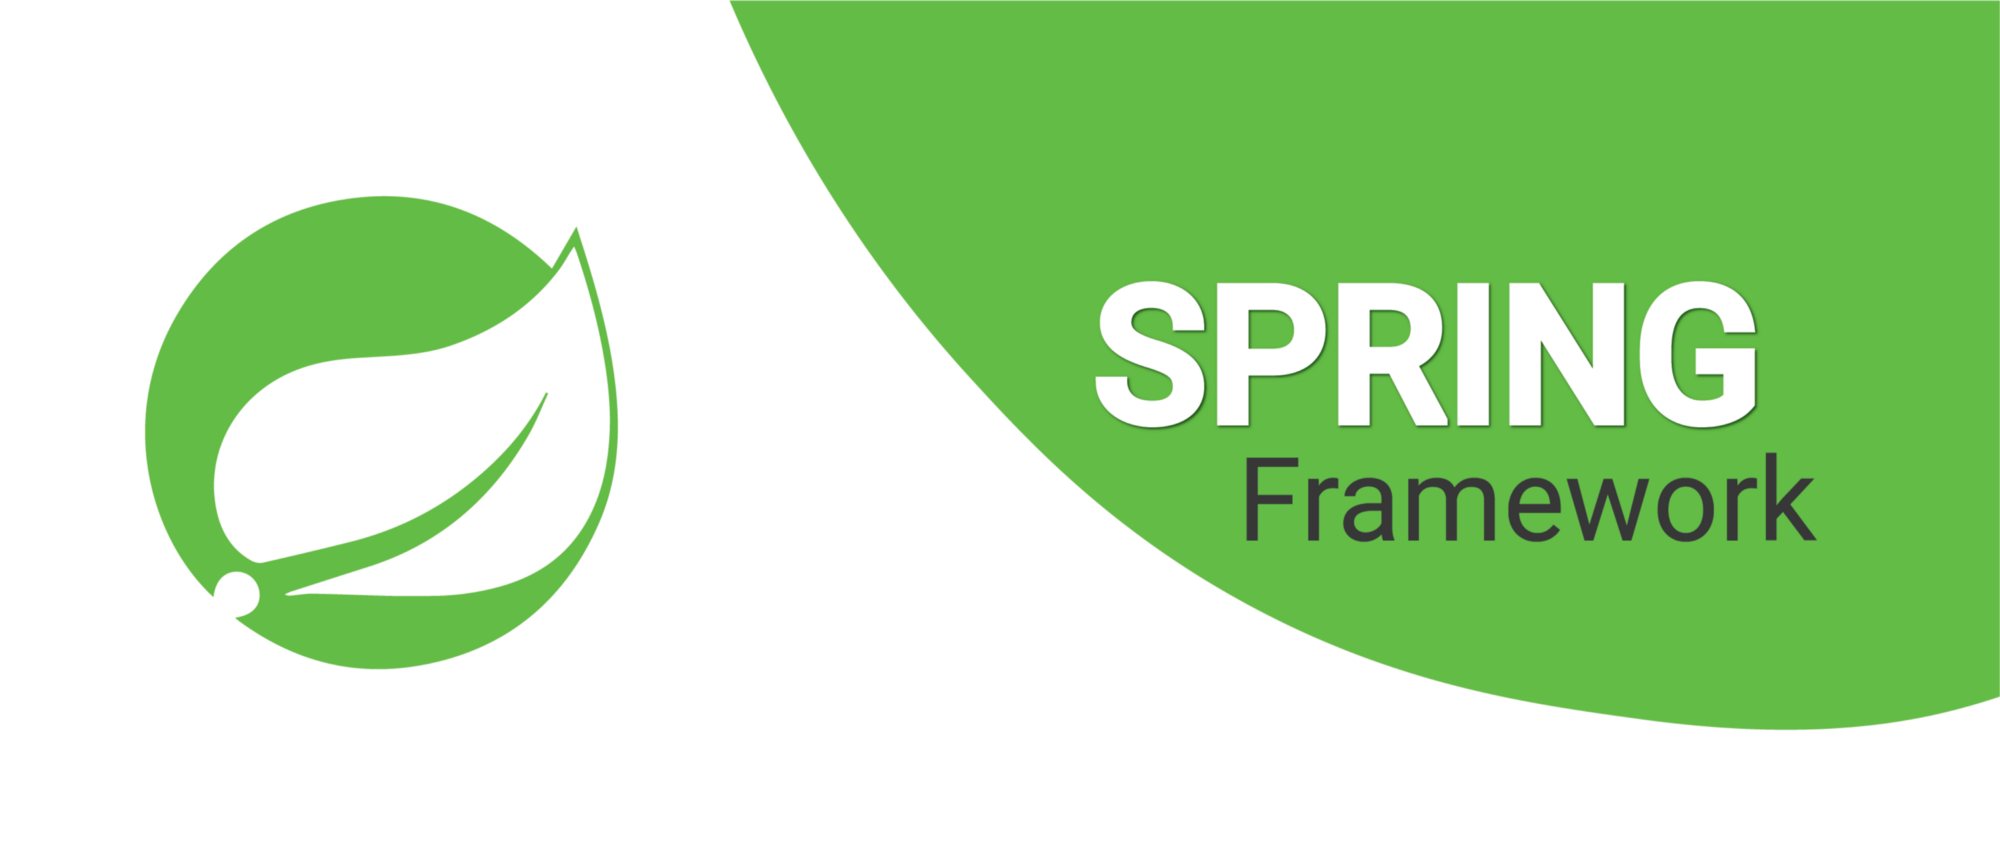 Top Tutorials To Learn Spring Framework For The Java Application Circuit Diagram Maker Is An Enterprise It Was Designed Simplify Ee Development And Make Developers More Productive Makes Use Of Inversion